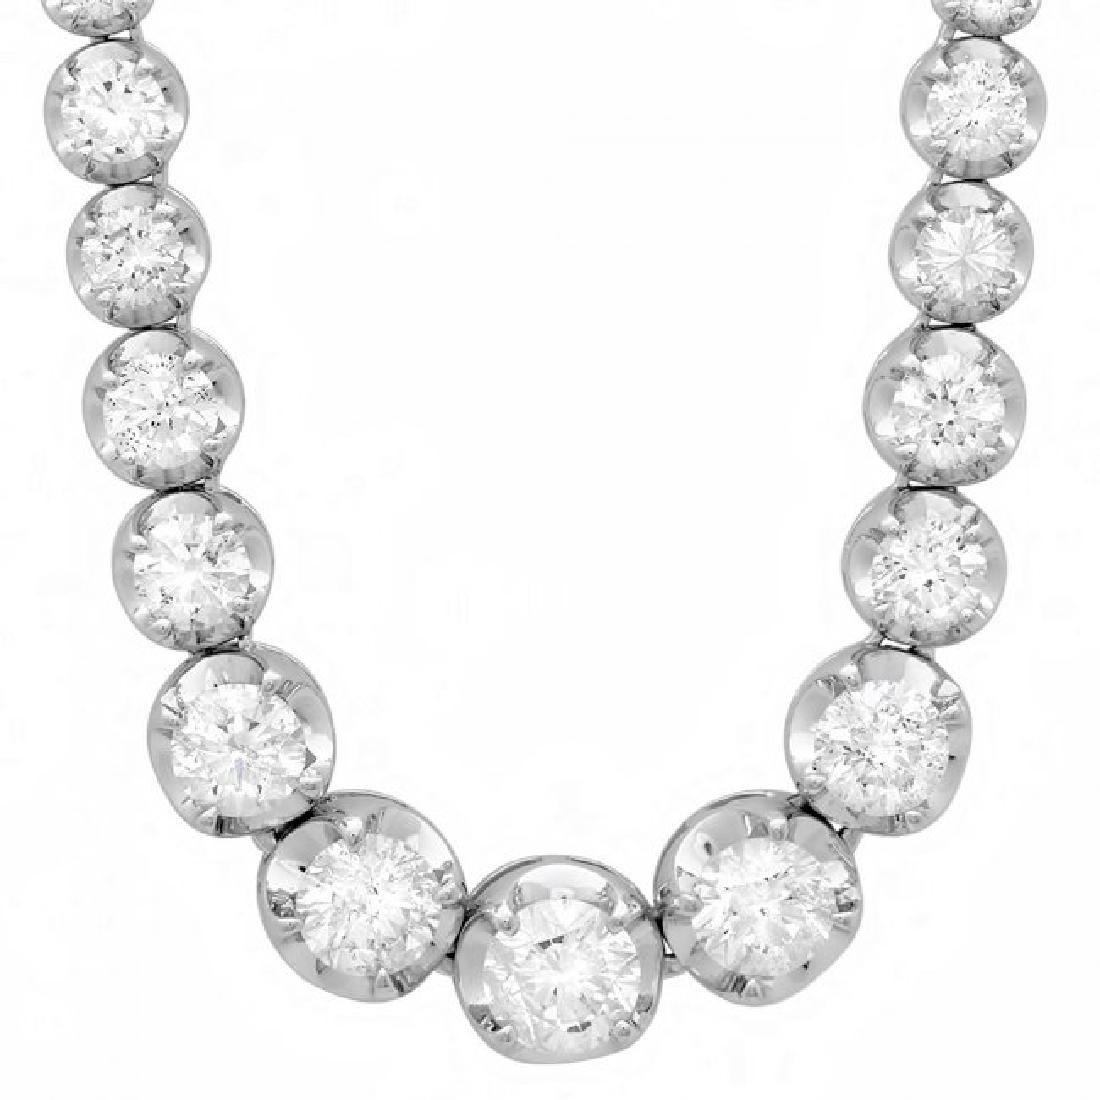 18k White Gold 10.20ct Diamond Necklace - 6